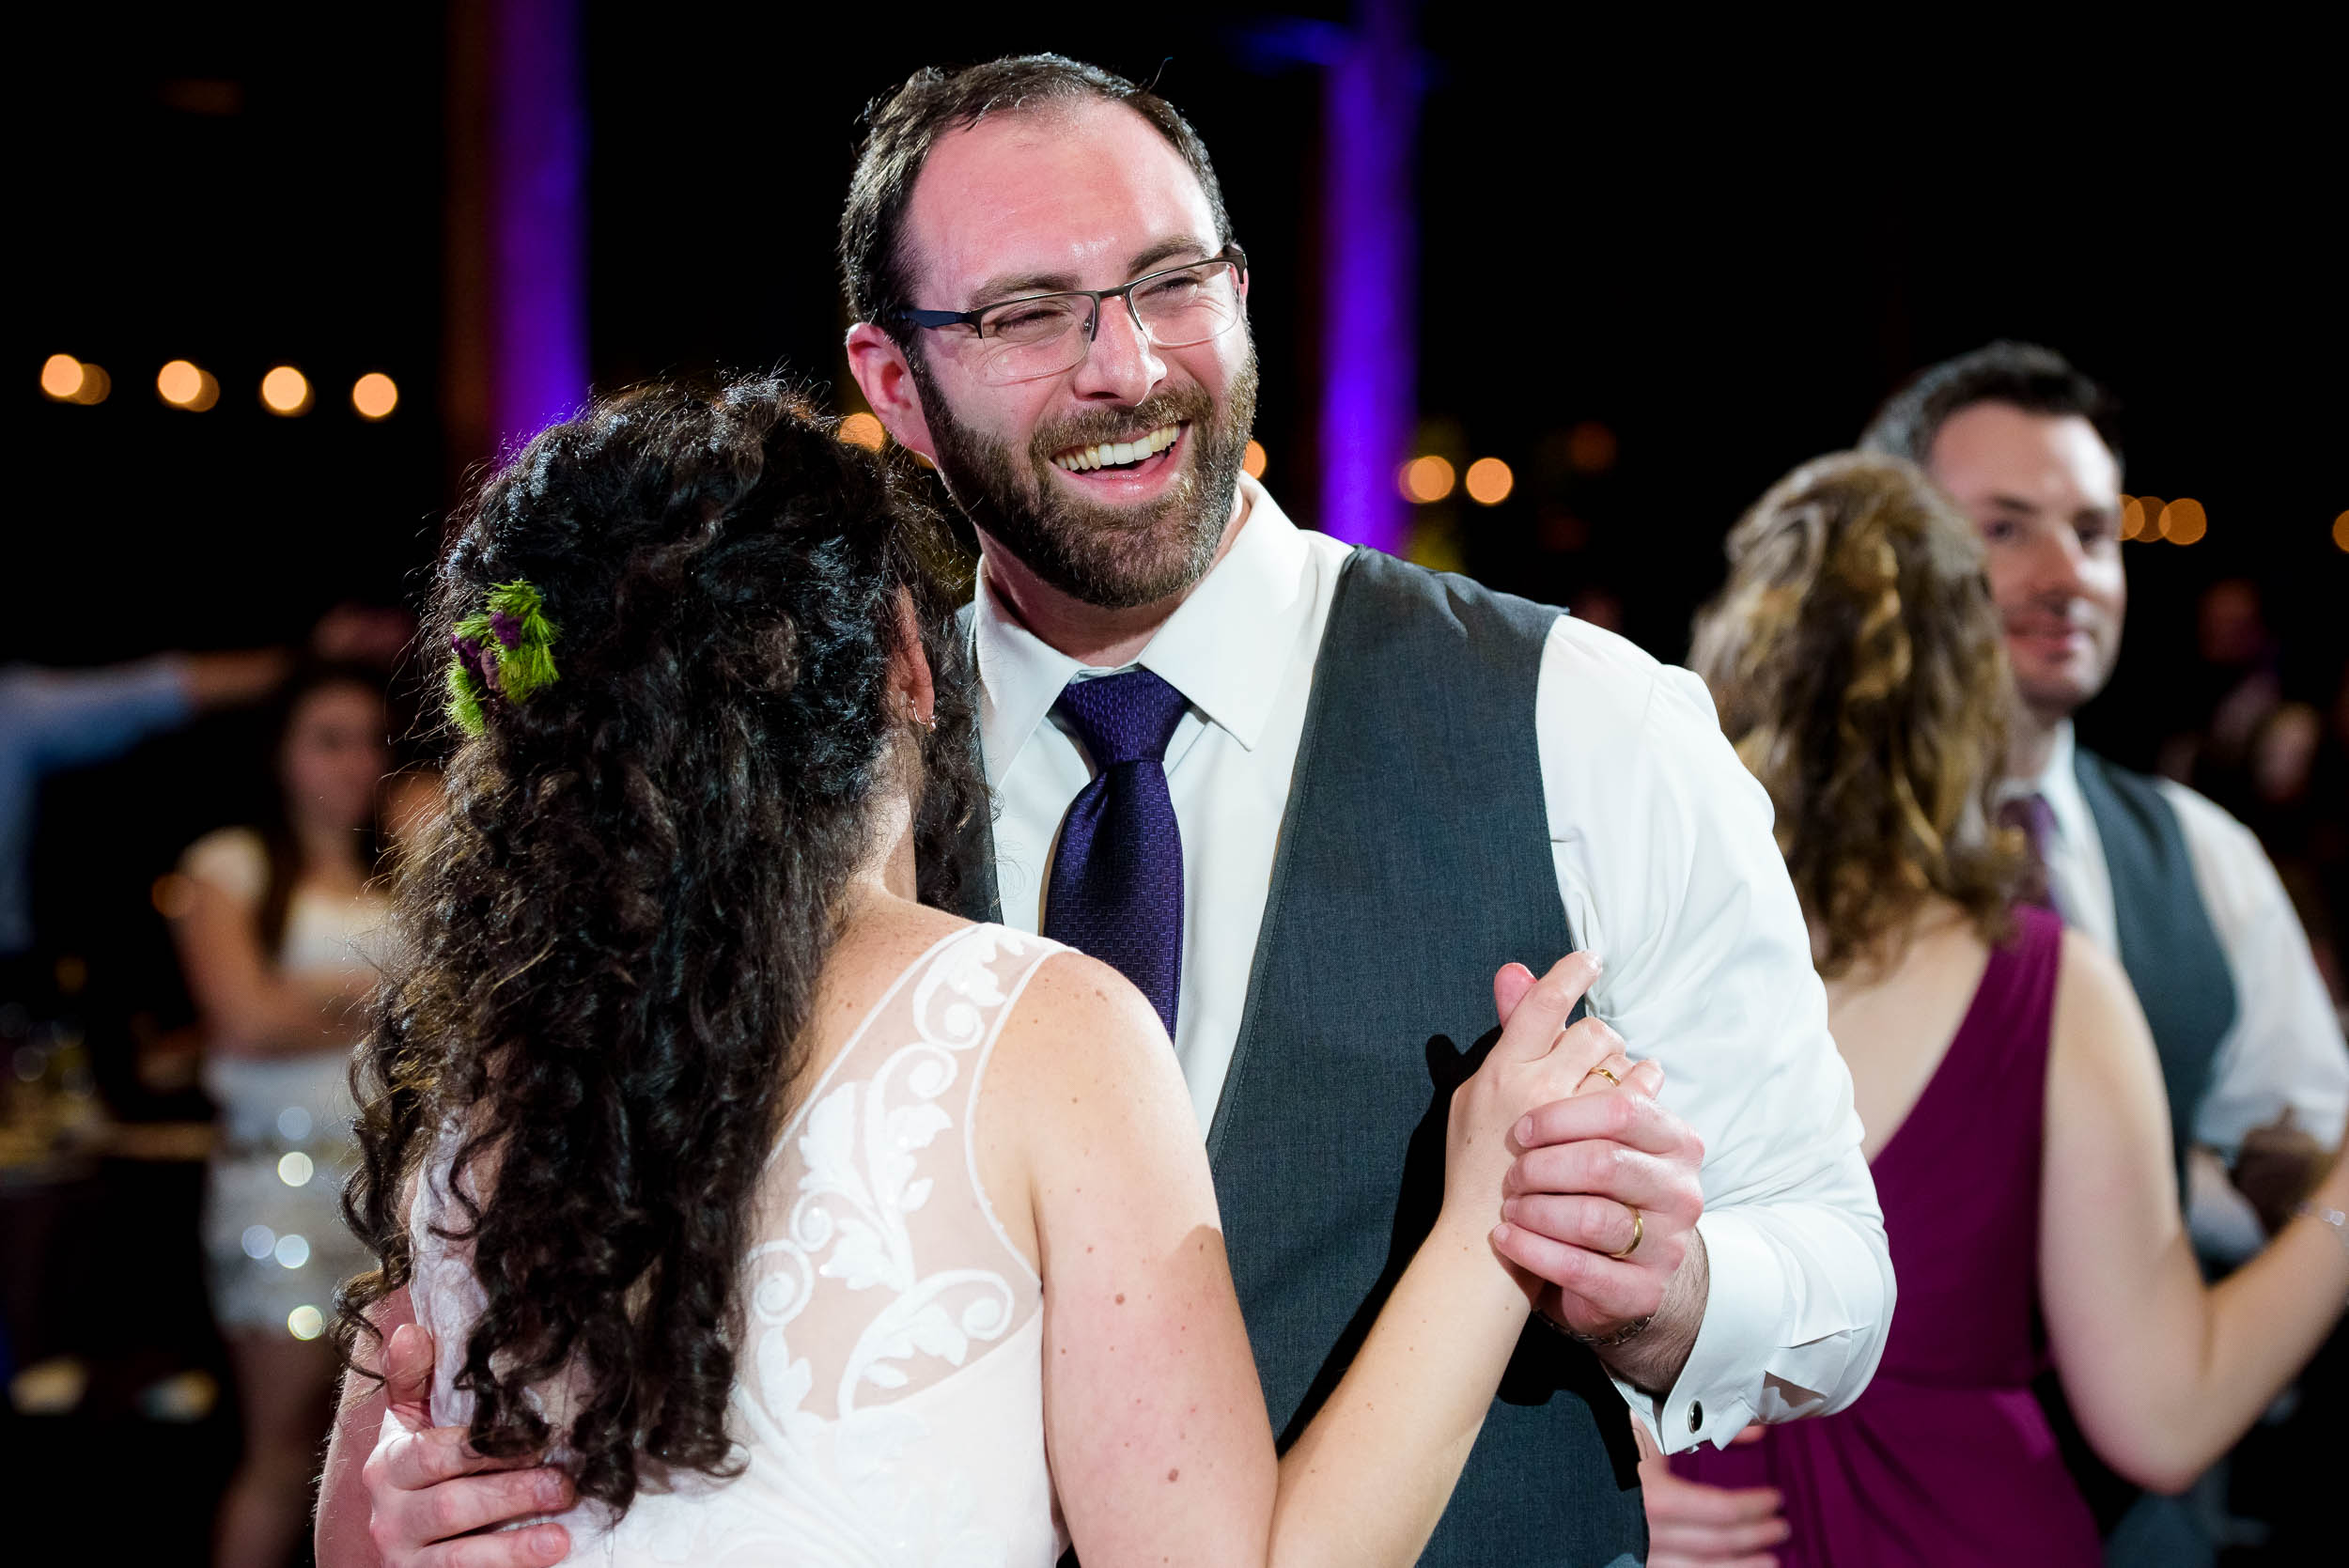 First dance moment during an Independence Grove Chicago wedding.